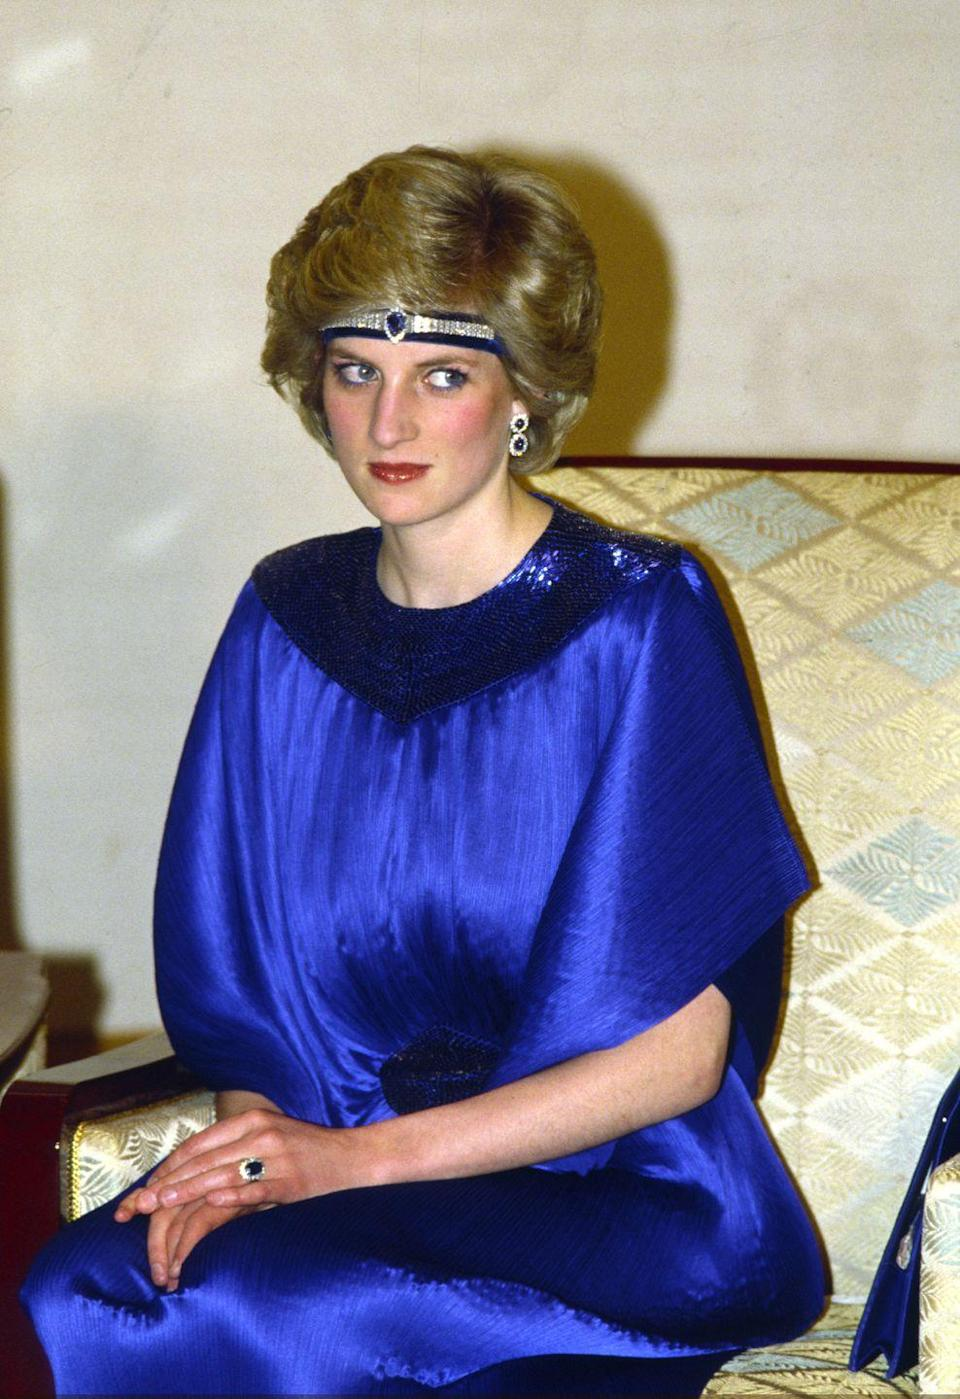 <p>Few moments were more memorable in Diana's jewelry history than when she wore this stunning diamond-and-sapphire necklace gifted by the Prince of Saudi Arabia and which she had redesigned as a headband several years after receiving the gift. Made to complement her engagement ring, this suite also included matching earrings, and she wore the set for many public appearances throughout the years. </p>